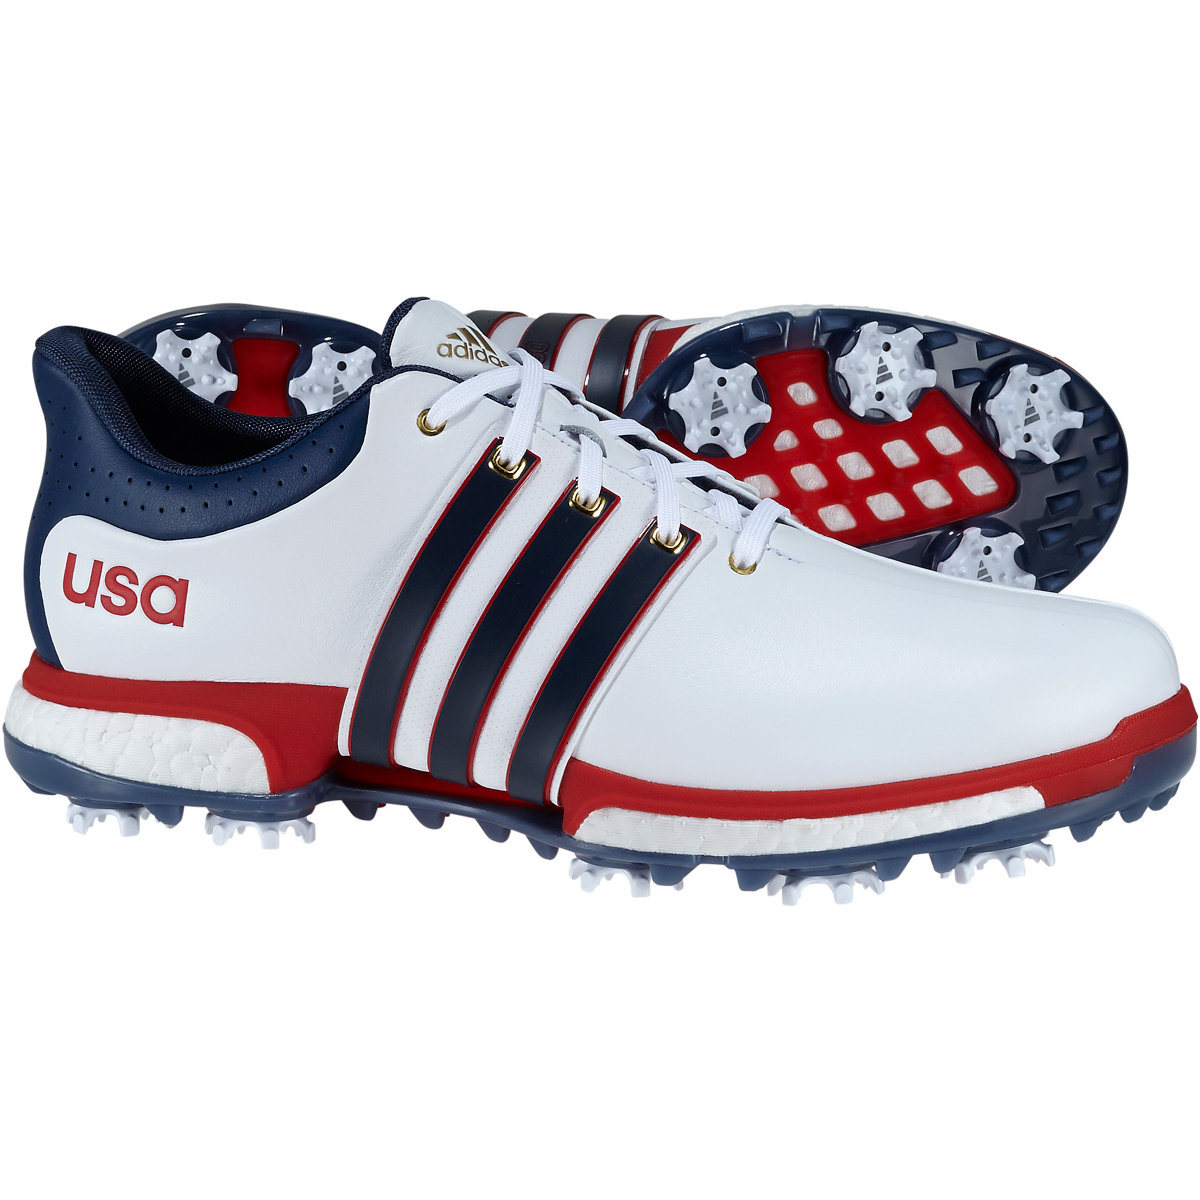 adidas shoes usa